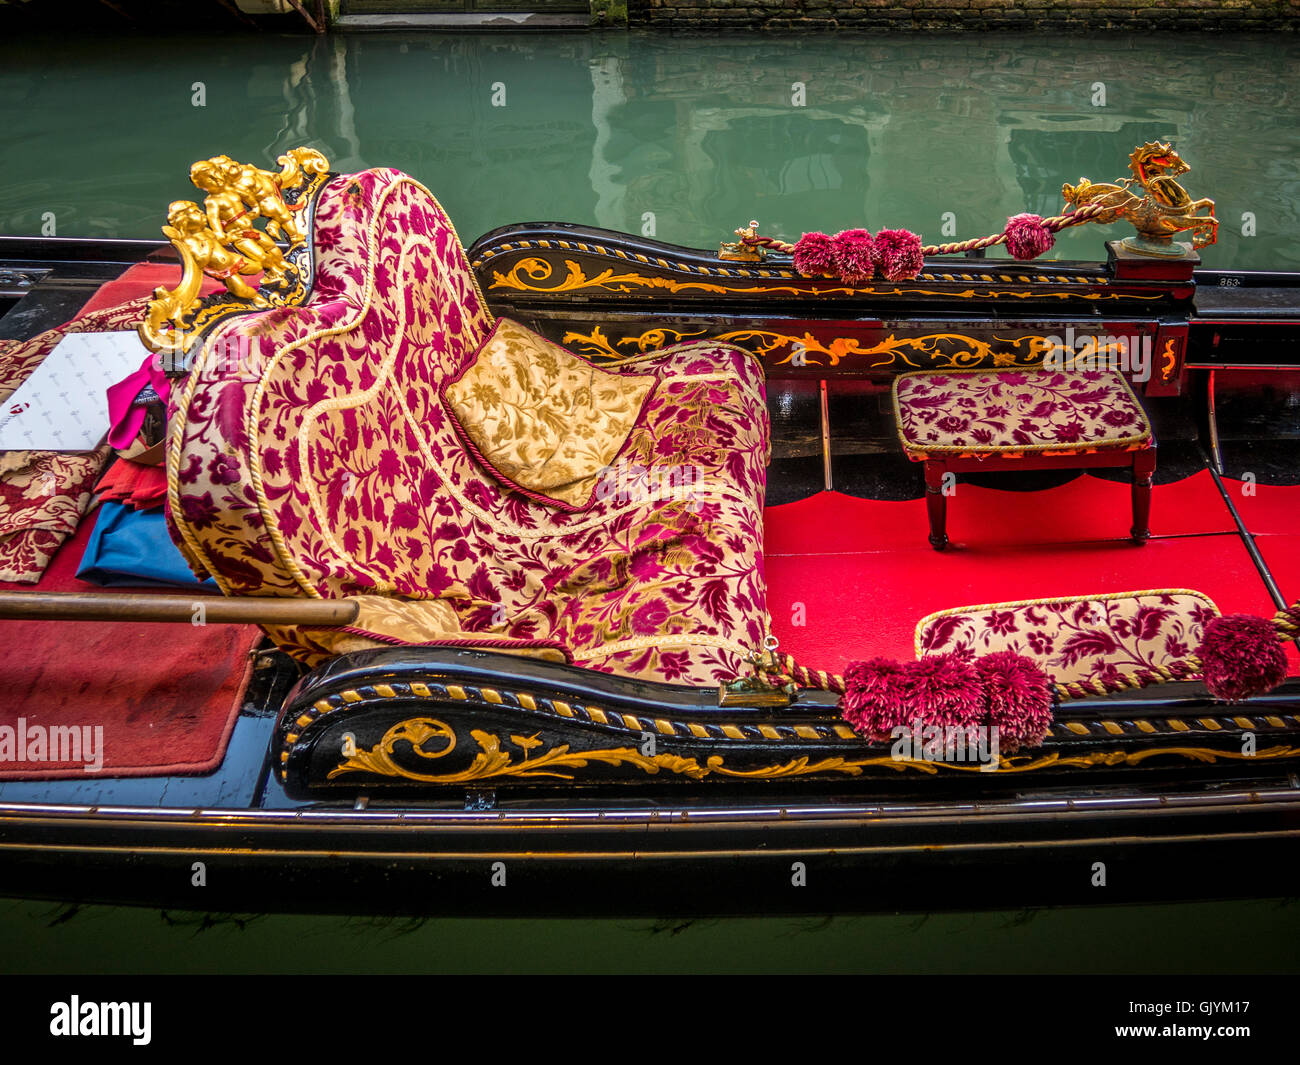 Ornate upholstered seats in a moored gondola. Venice, Italy. - Stock Image